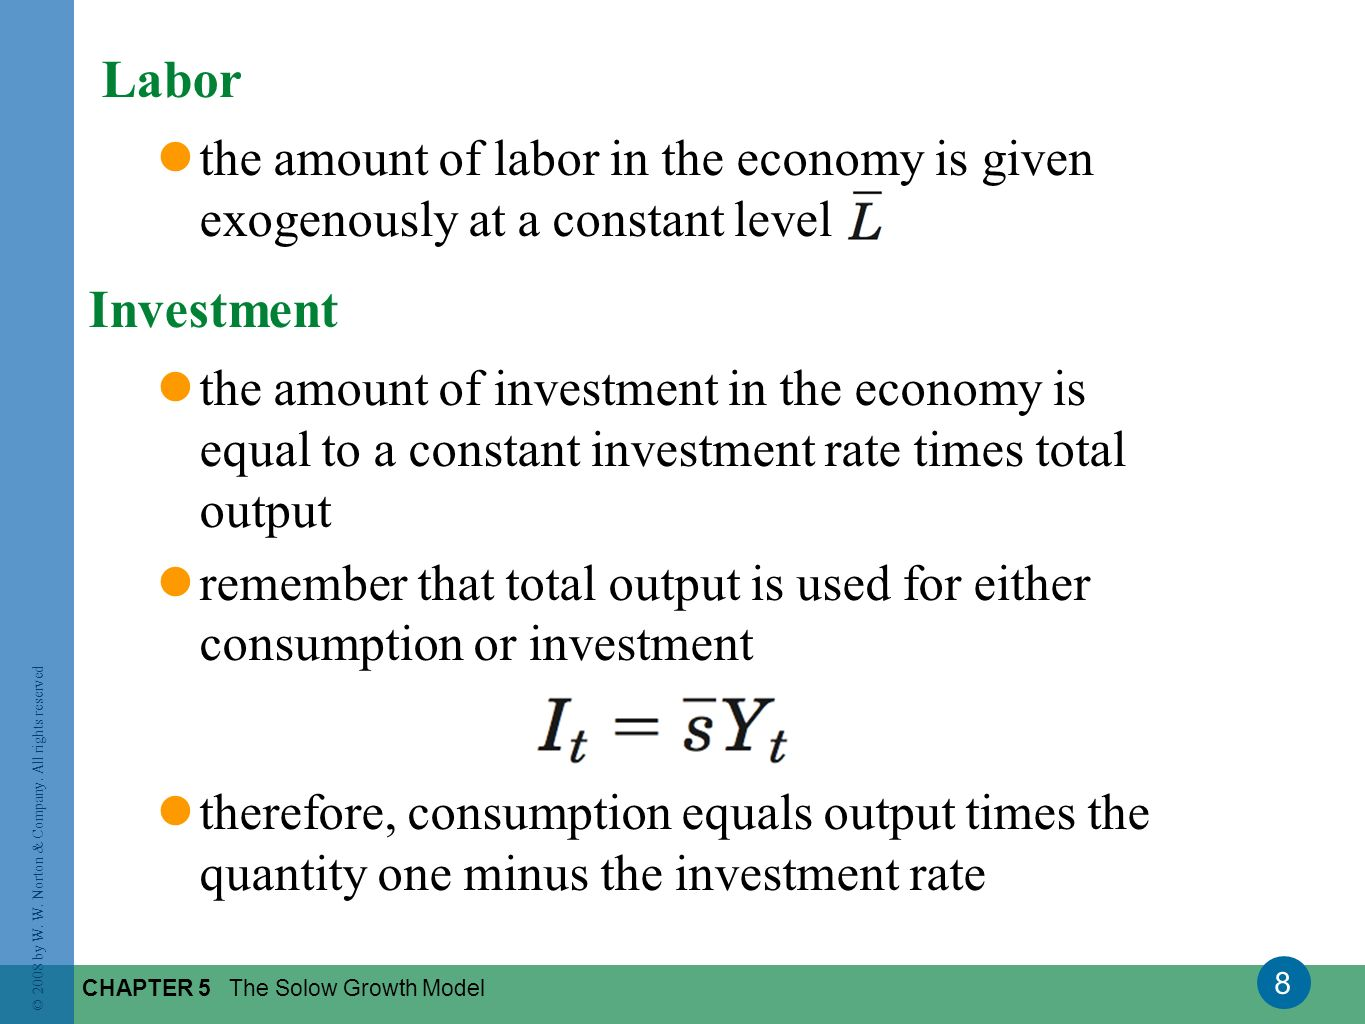 Labor the amount of labor in the economy is given exogenously at a constant level. Investment.